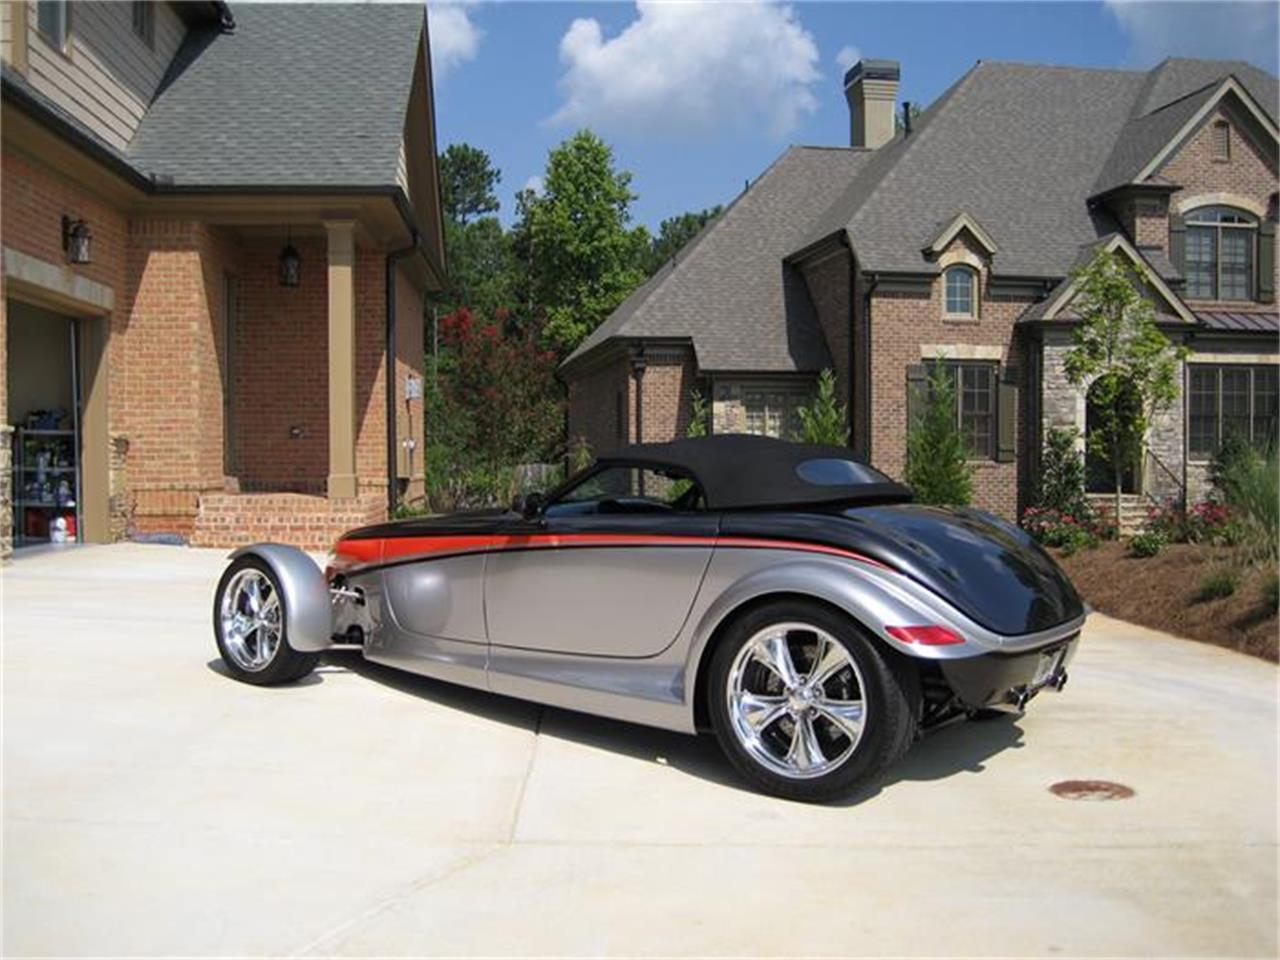 Large Picture of '99 Chrysler Prowler - $89,900.00 Offered by Bantam City Rods - ARNS